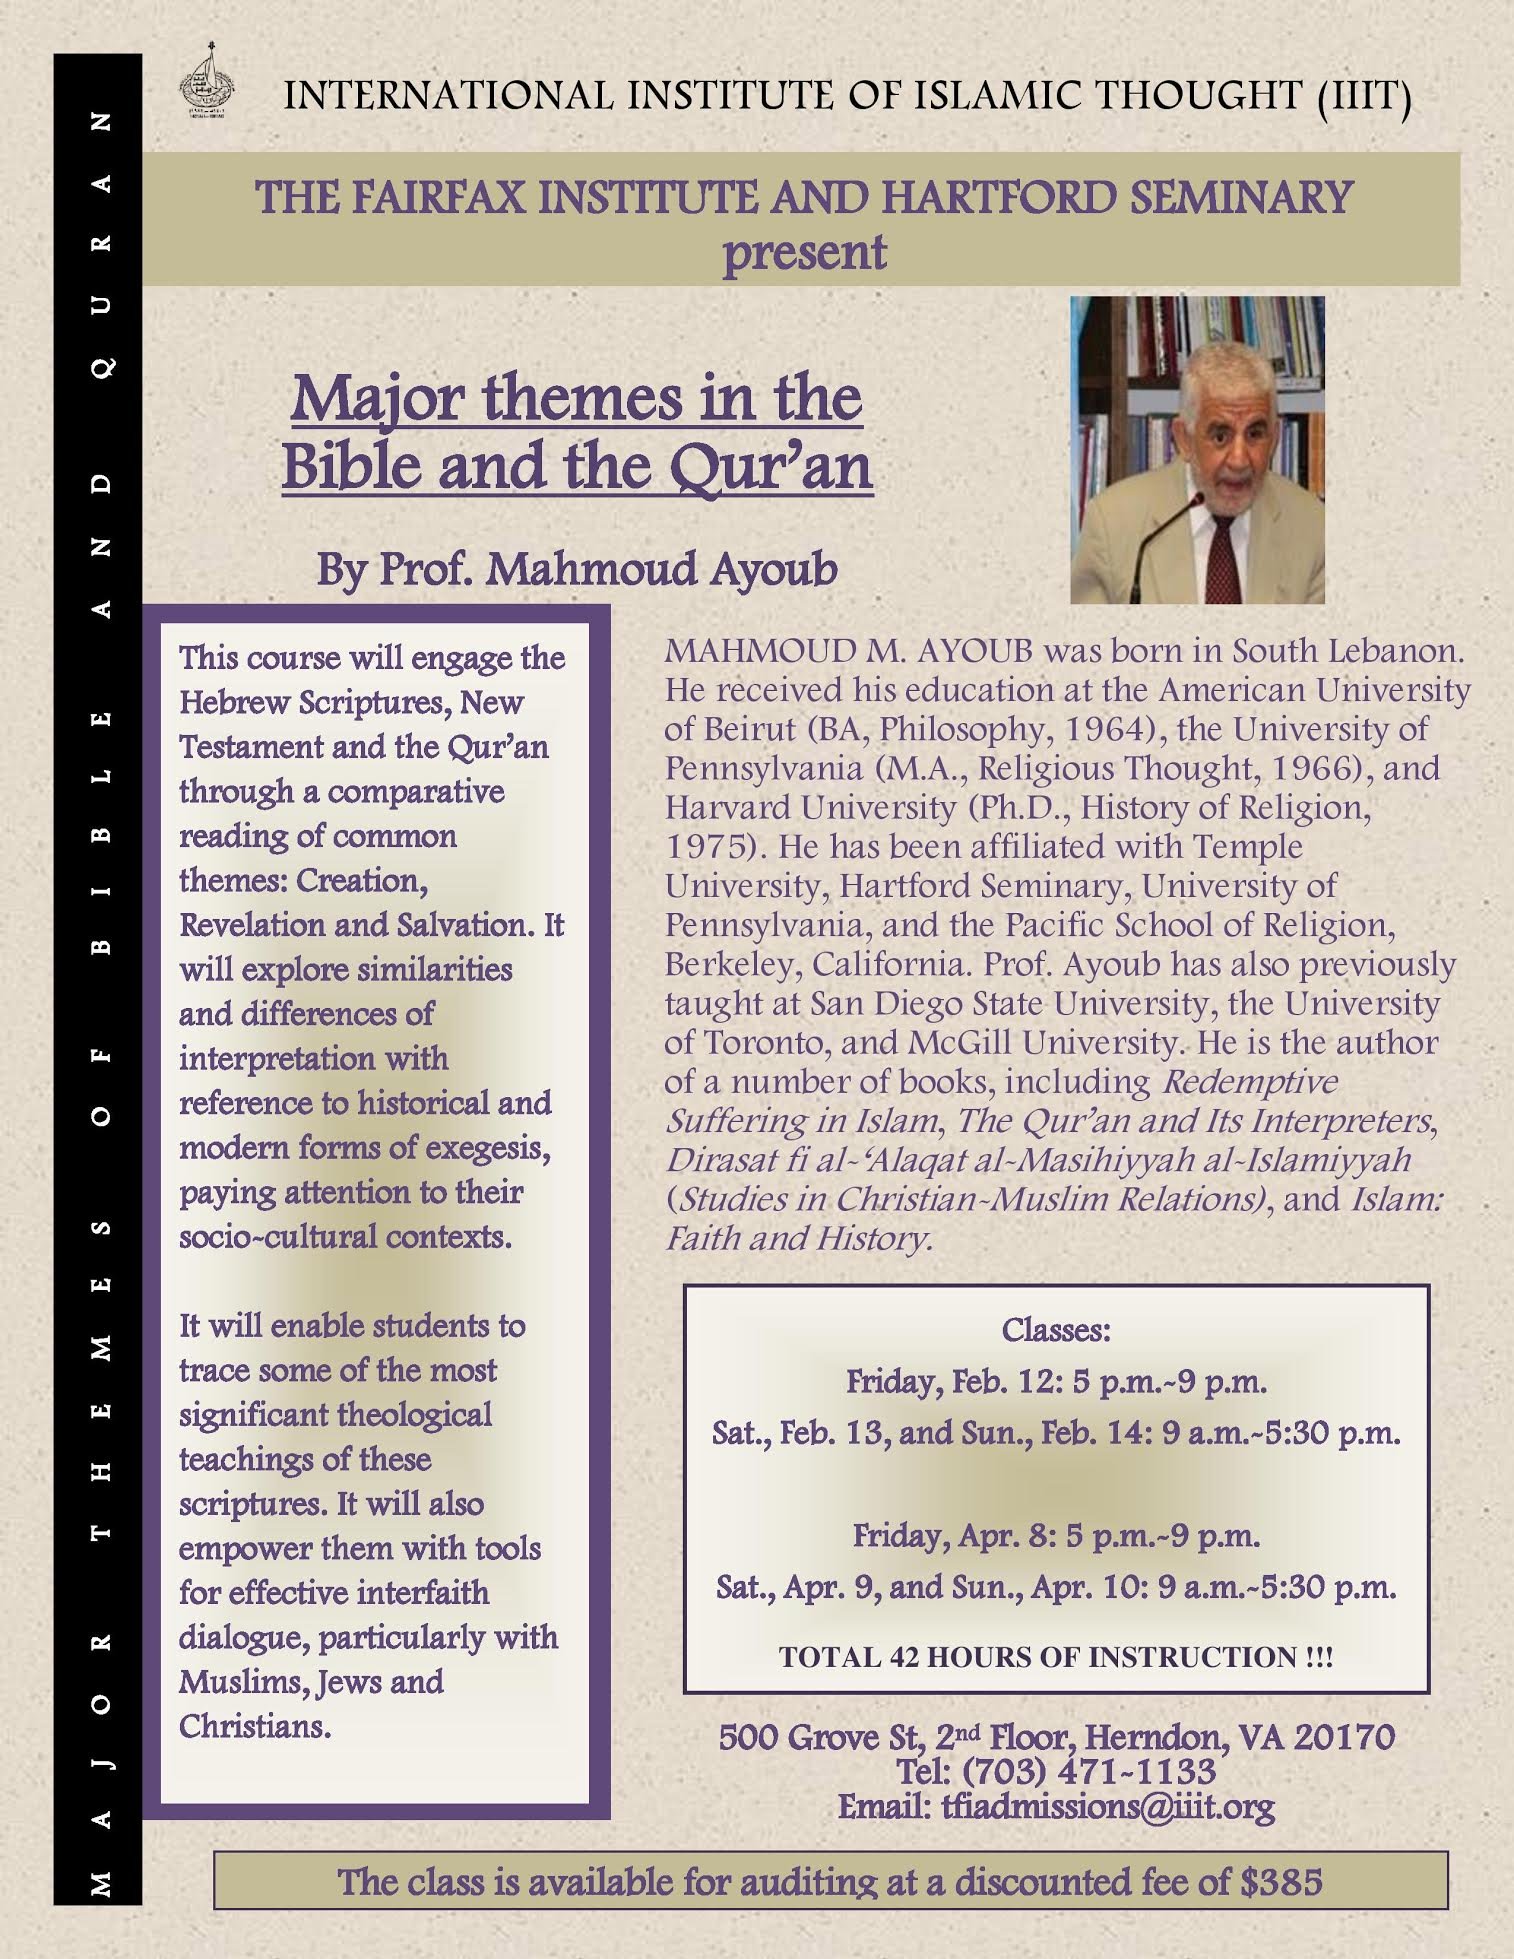 Major Themes in the Bible and the Qur'an